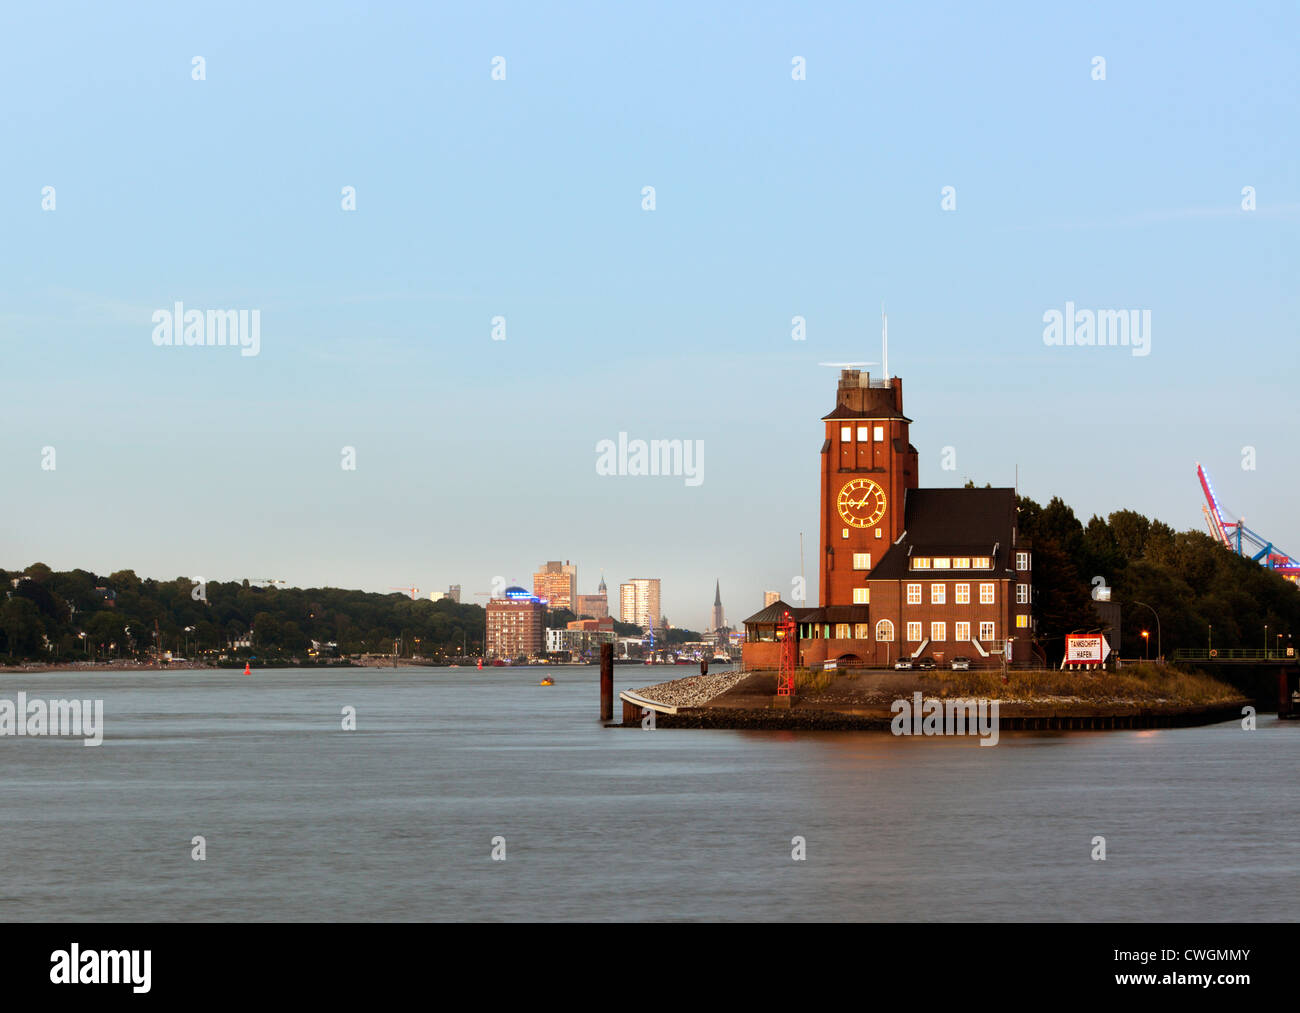 Pilot's Tower at the port entrance of Hamburg - Stock Image